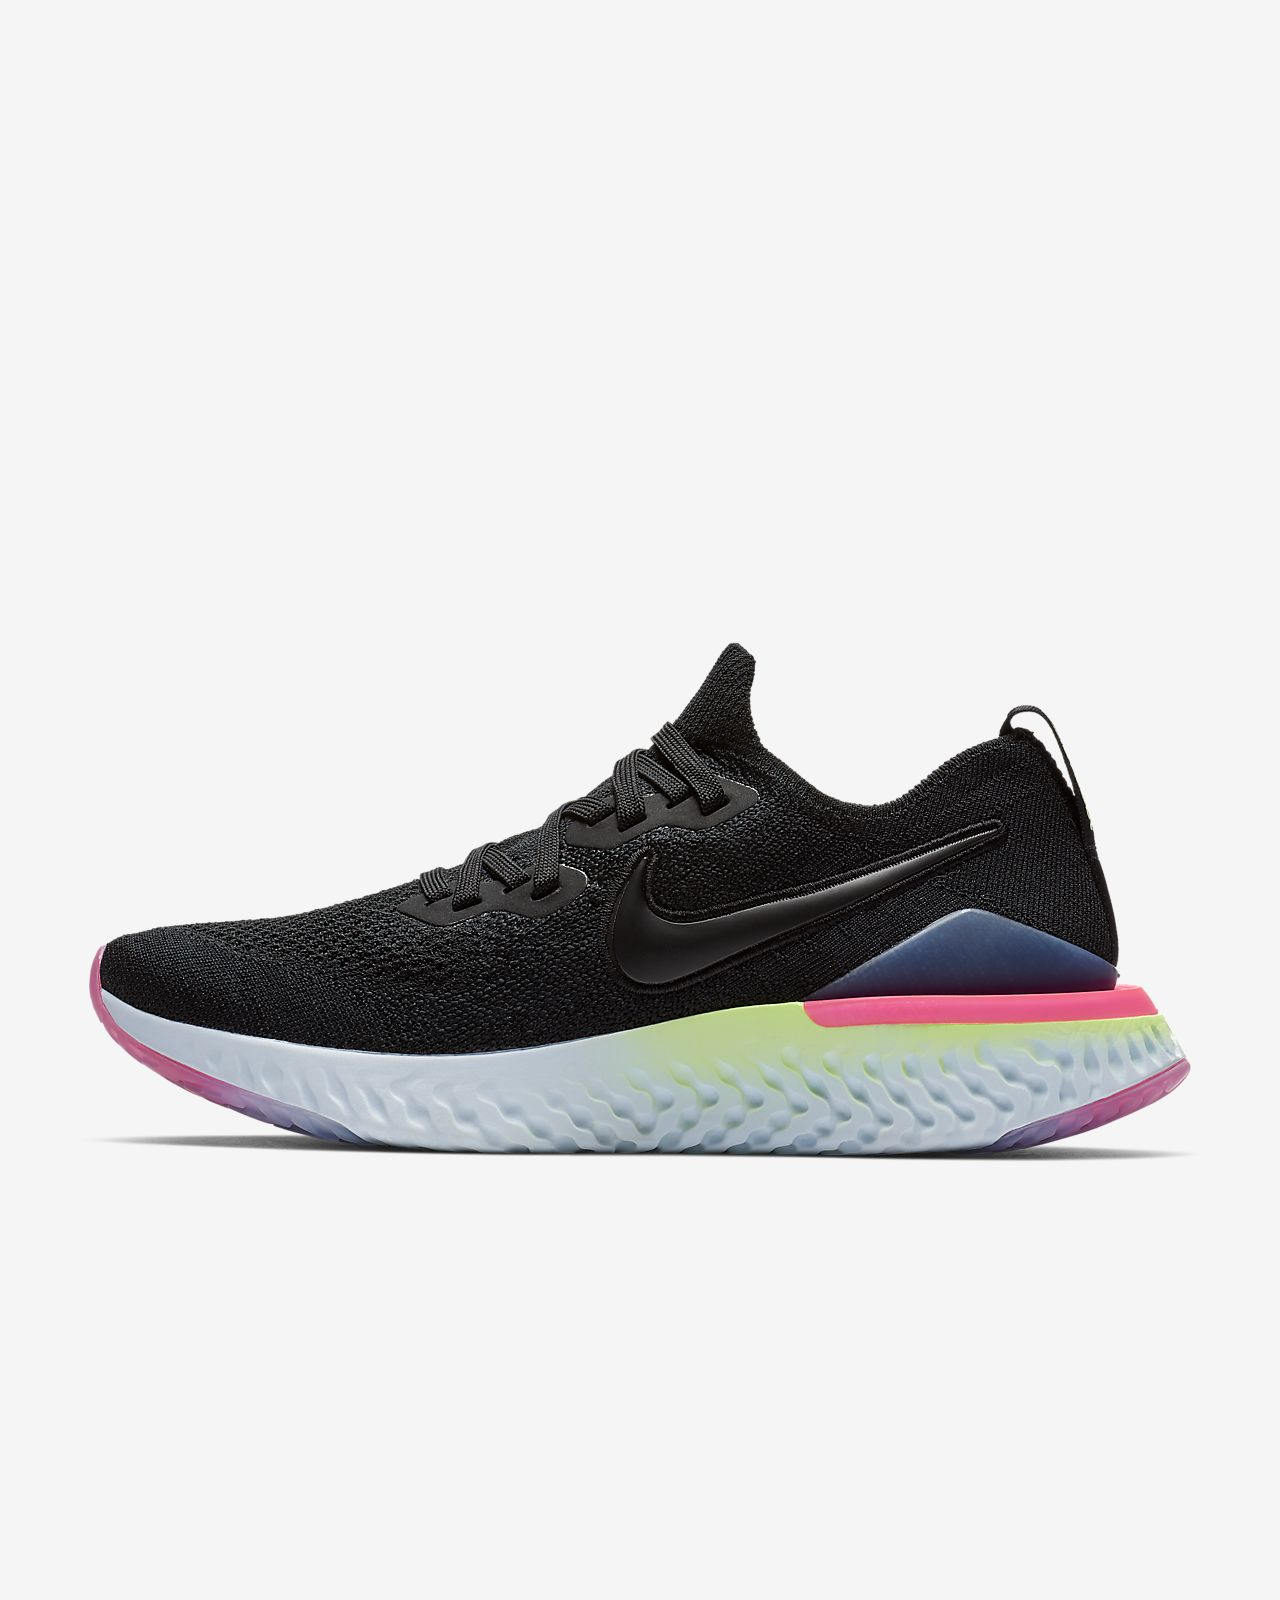 brand new 42ae1 66993 Nike Epic React Flyknit 2 Women's Running Shoe. Nike.com